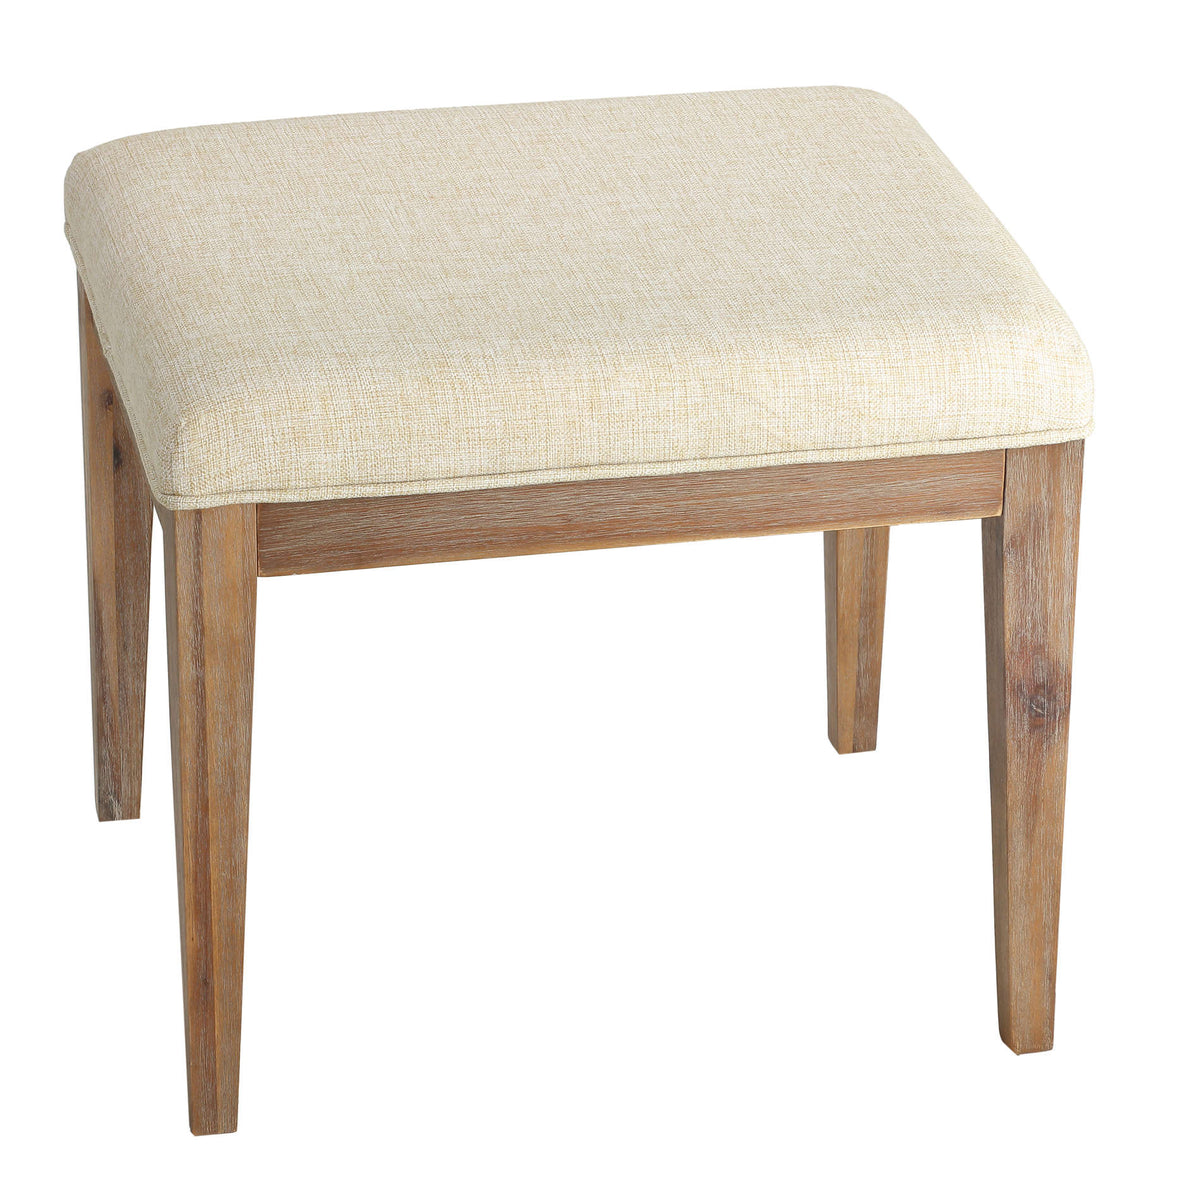 "Cortesi Home Onel Vanity Bench with Neutral Linen Fabric, 20"" Wide"